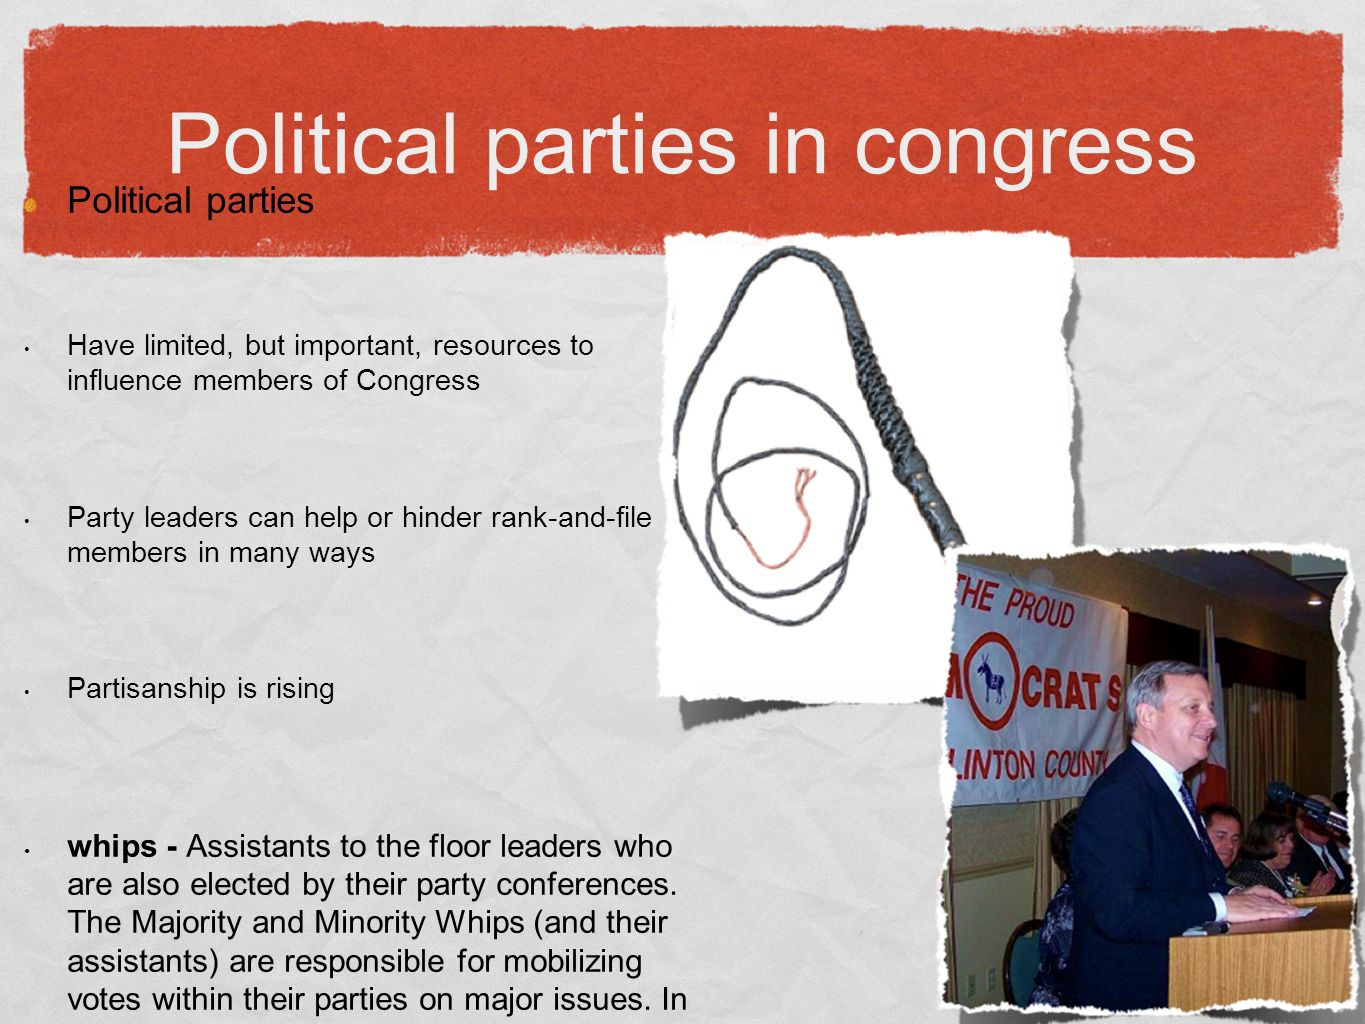 Political parties in congress Political parties Have limited, but important, resources to influence members of Congress Party leaders can help or hinder rank-and-file members in many ways Partisanship is rising whips - Assistants to the floor leaders who are also elected by their party conferences.